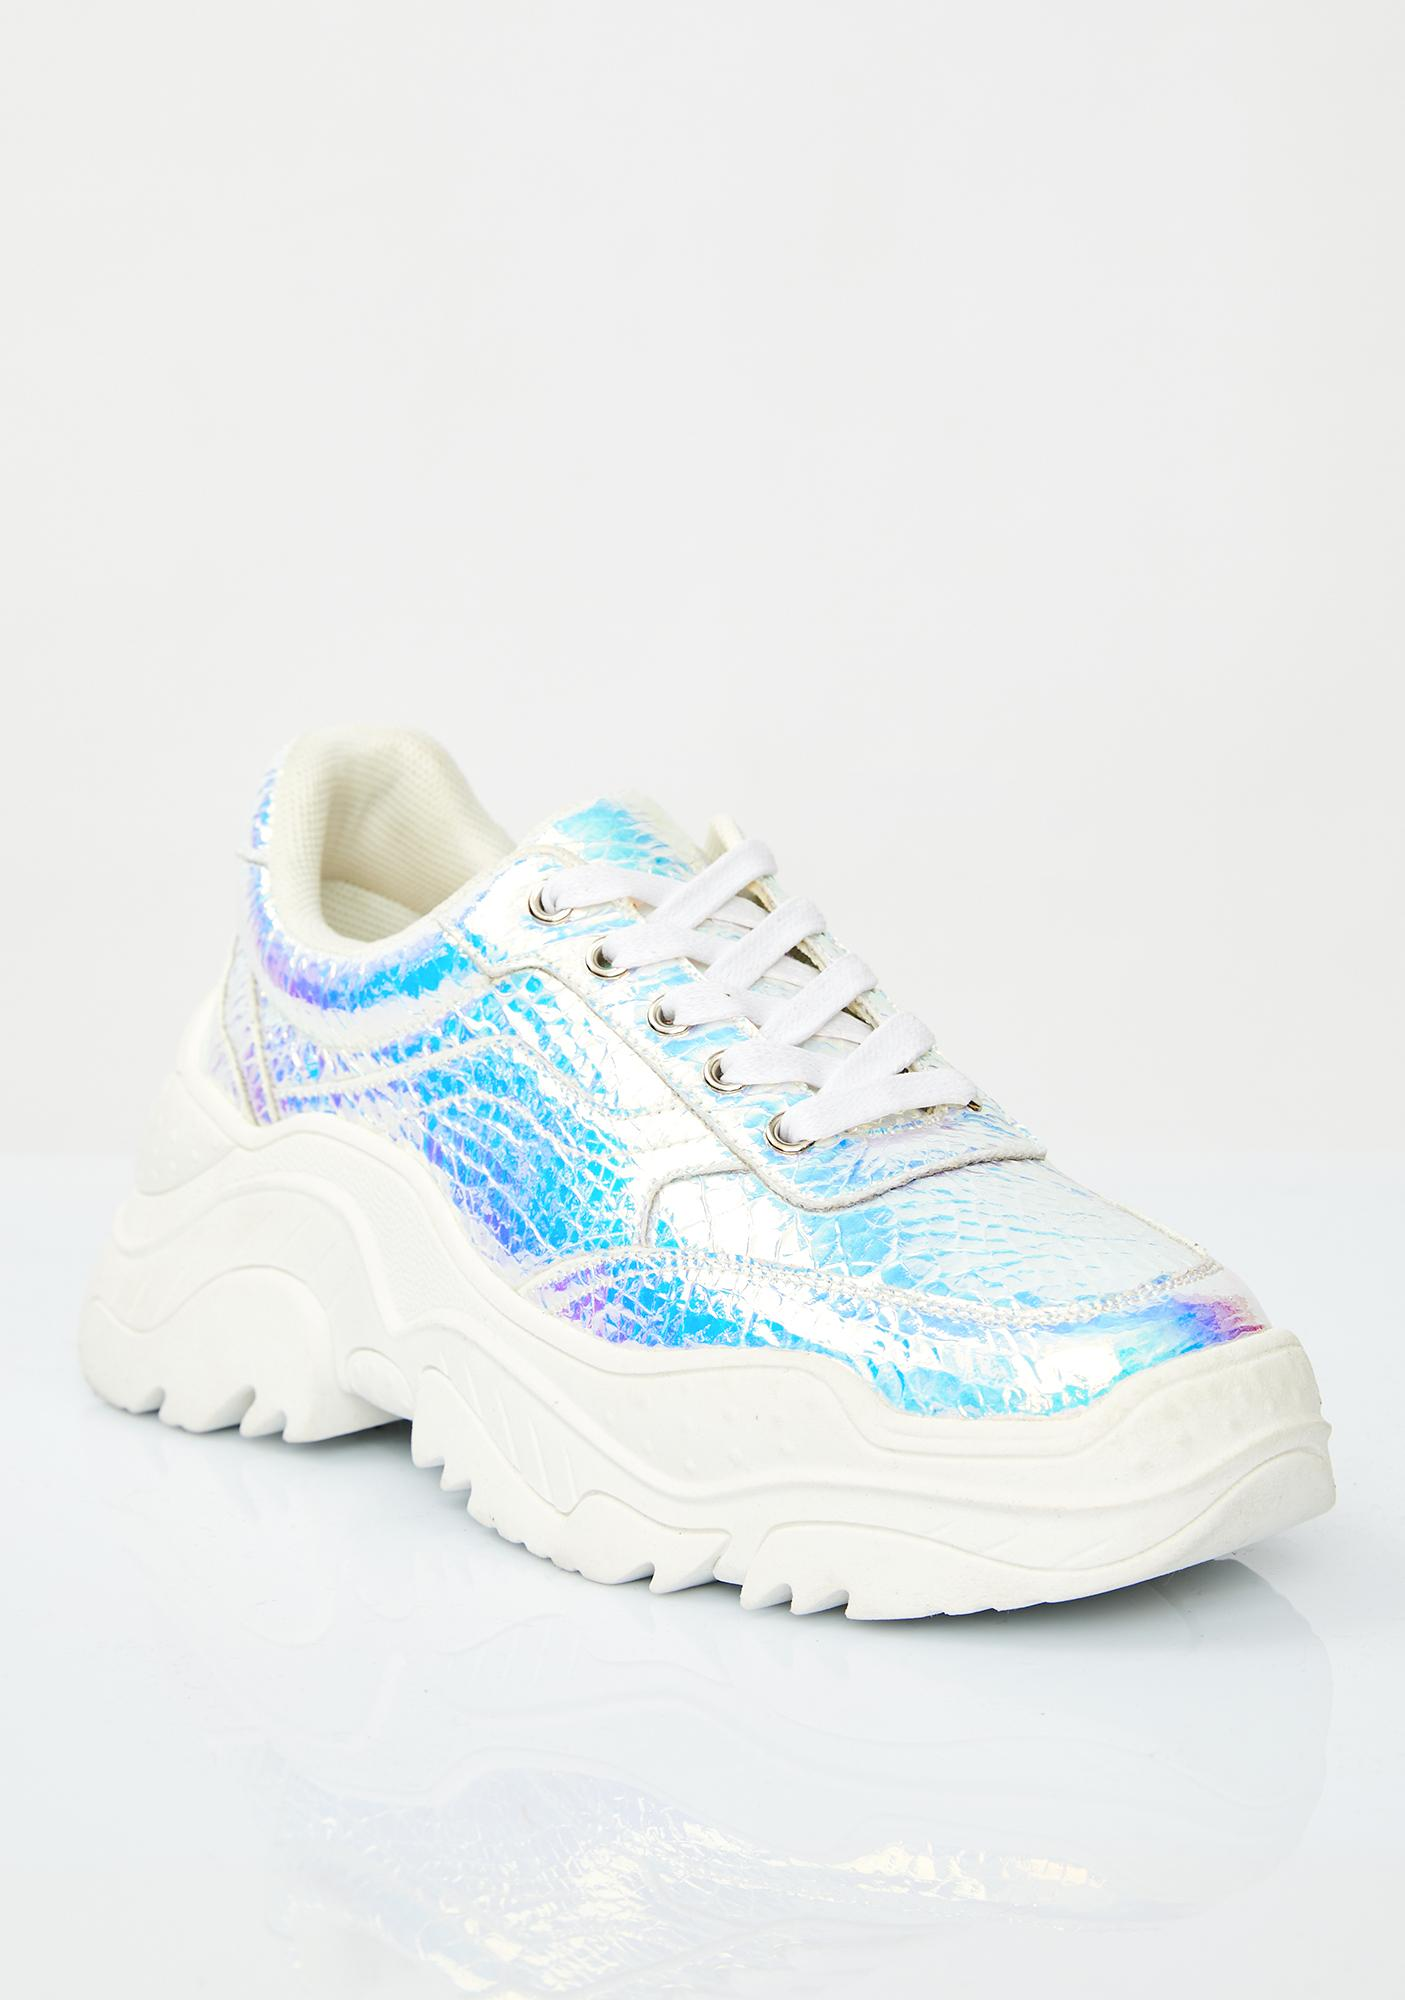 Current Mood Fifth Dimension Hologram Sneakers